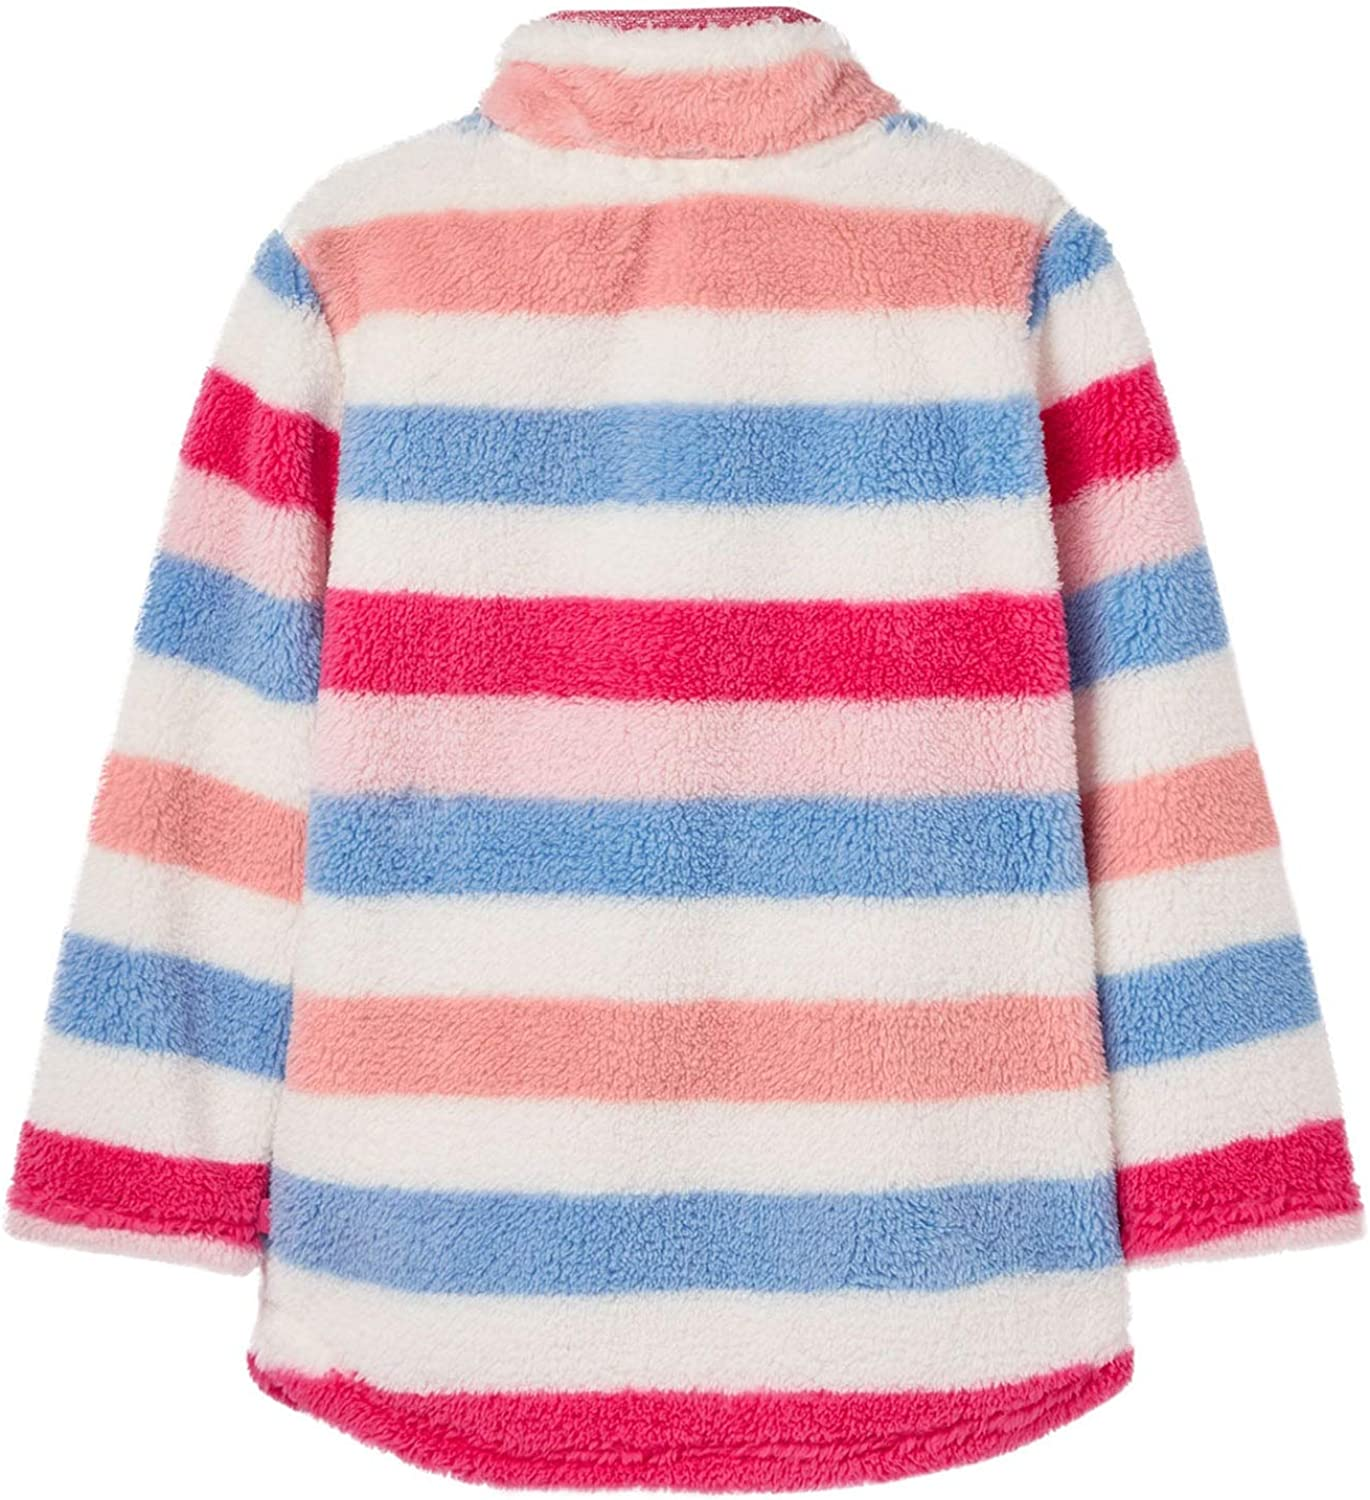 Joules Girls Ellie Long Sleeve Top